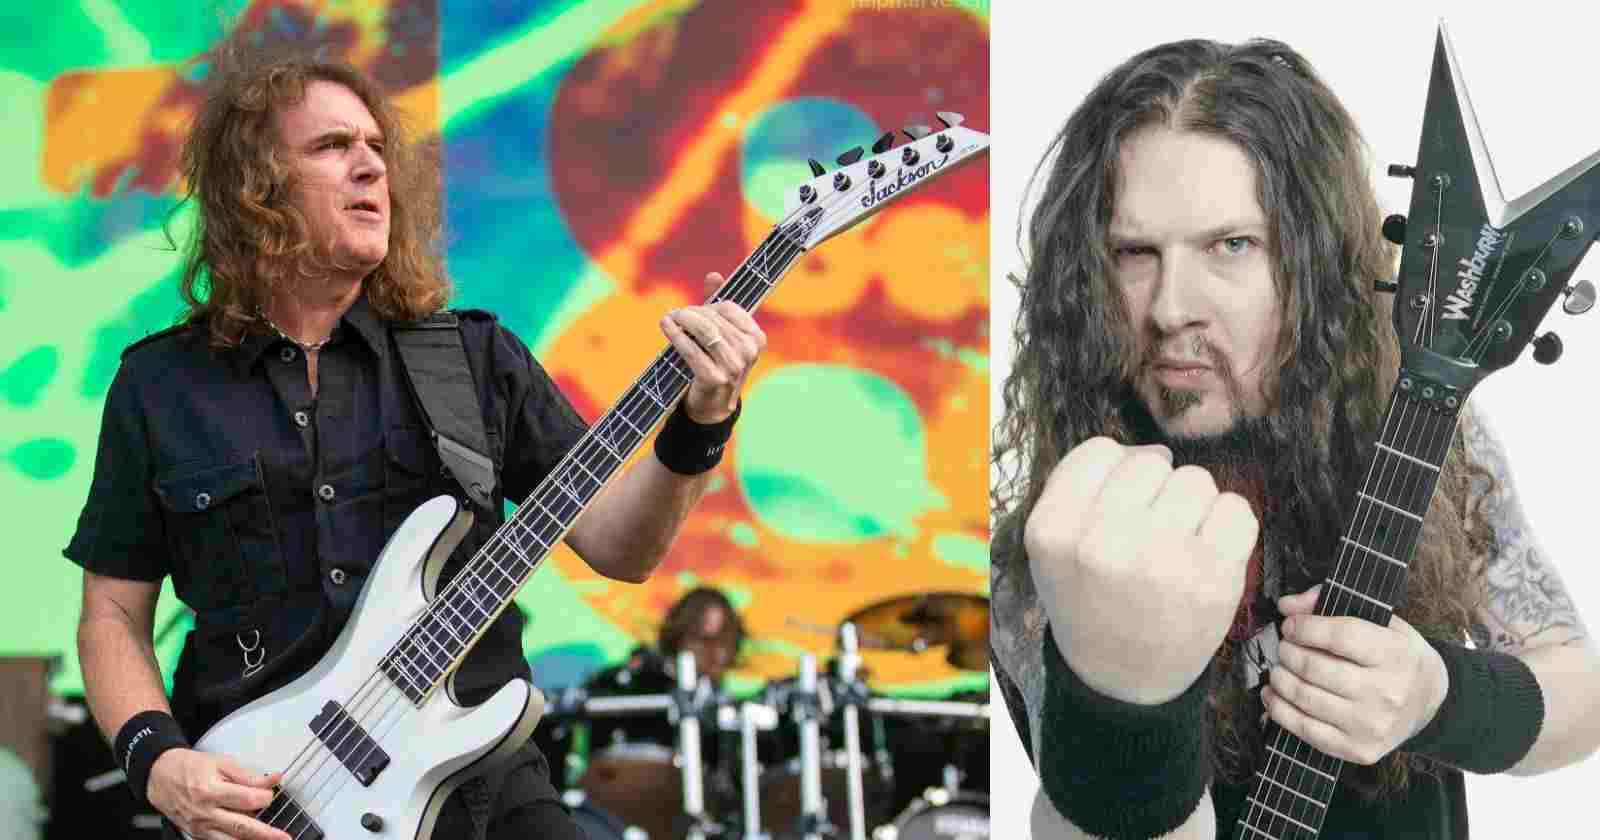 David Ellefson Dimebag Darrel